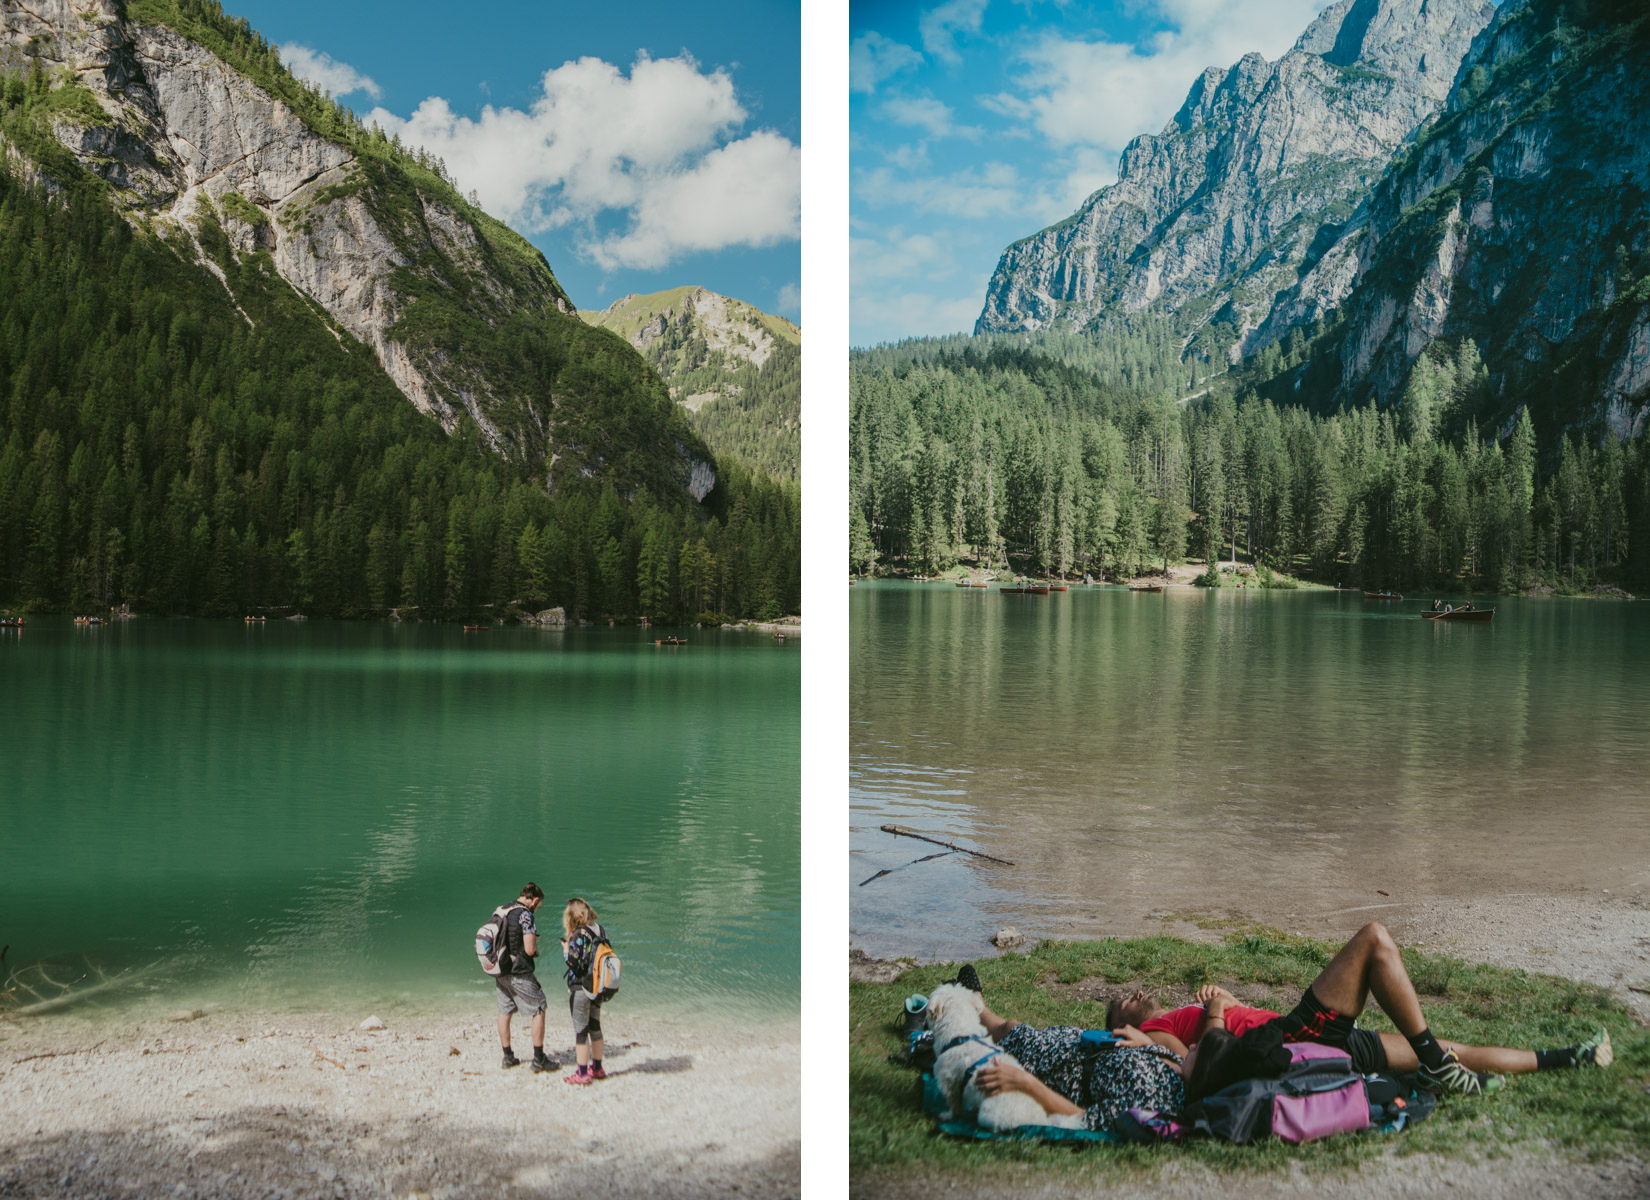 A panoramic view of Braies Lake on the Dolomites with people on the foreground enjoying some relax on the grass and watching their mobile phones ; vista panoramica del lago di Braies con delle persone alcune delle quali si rilassano stese sull'erba e altre consultano dei cellulari